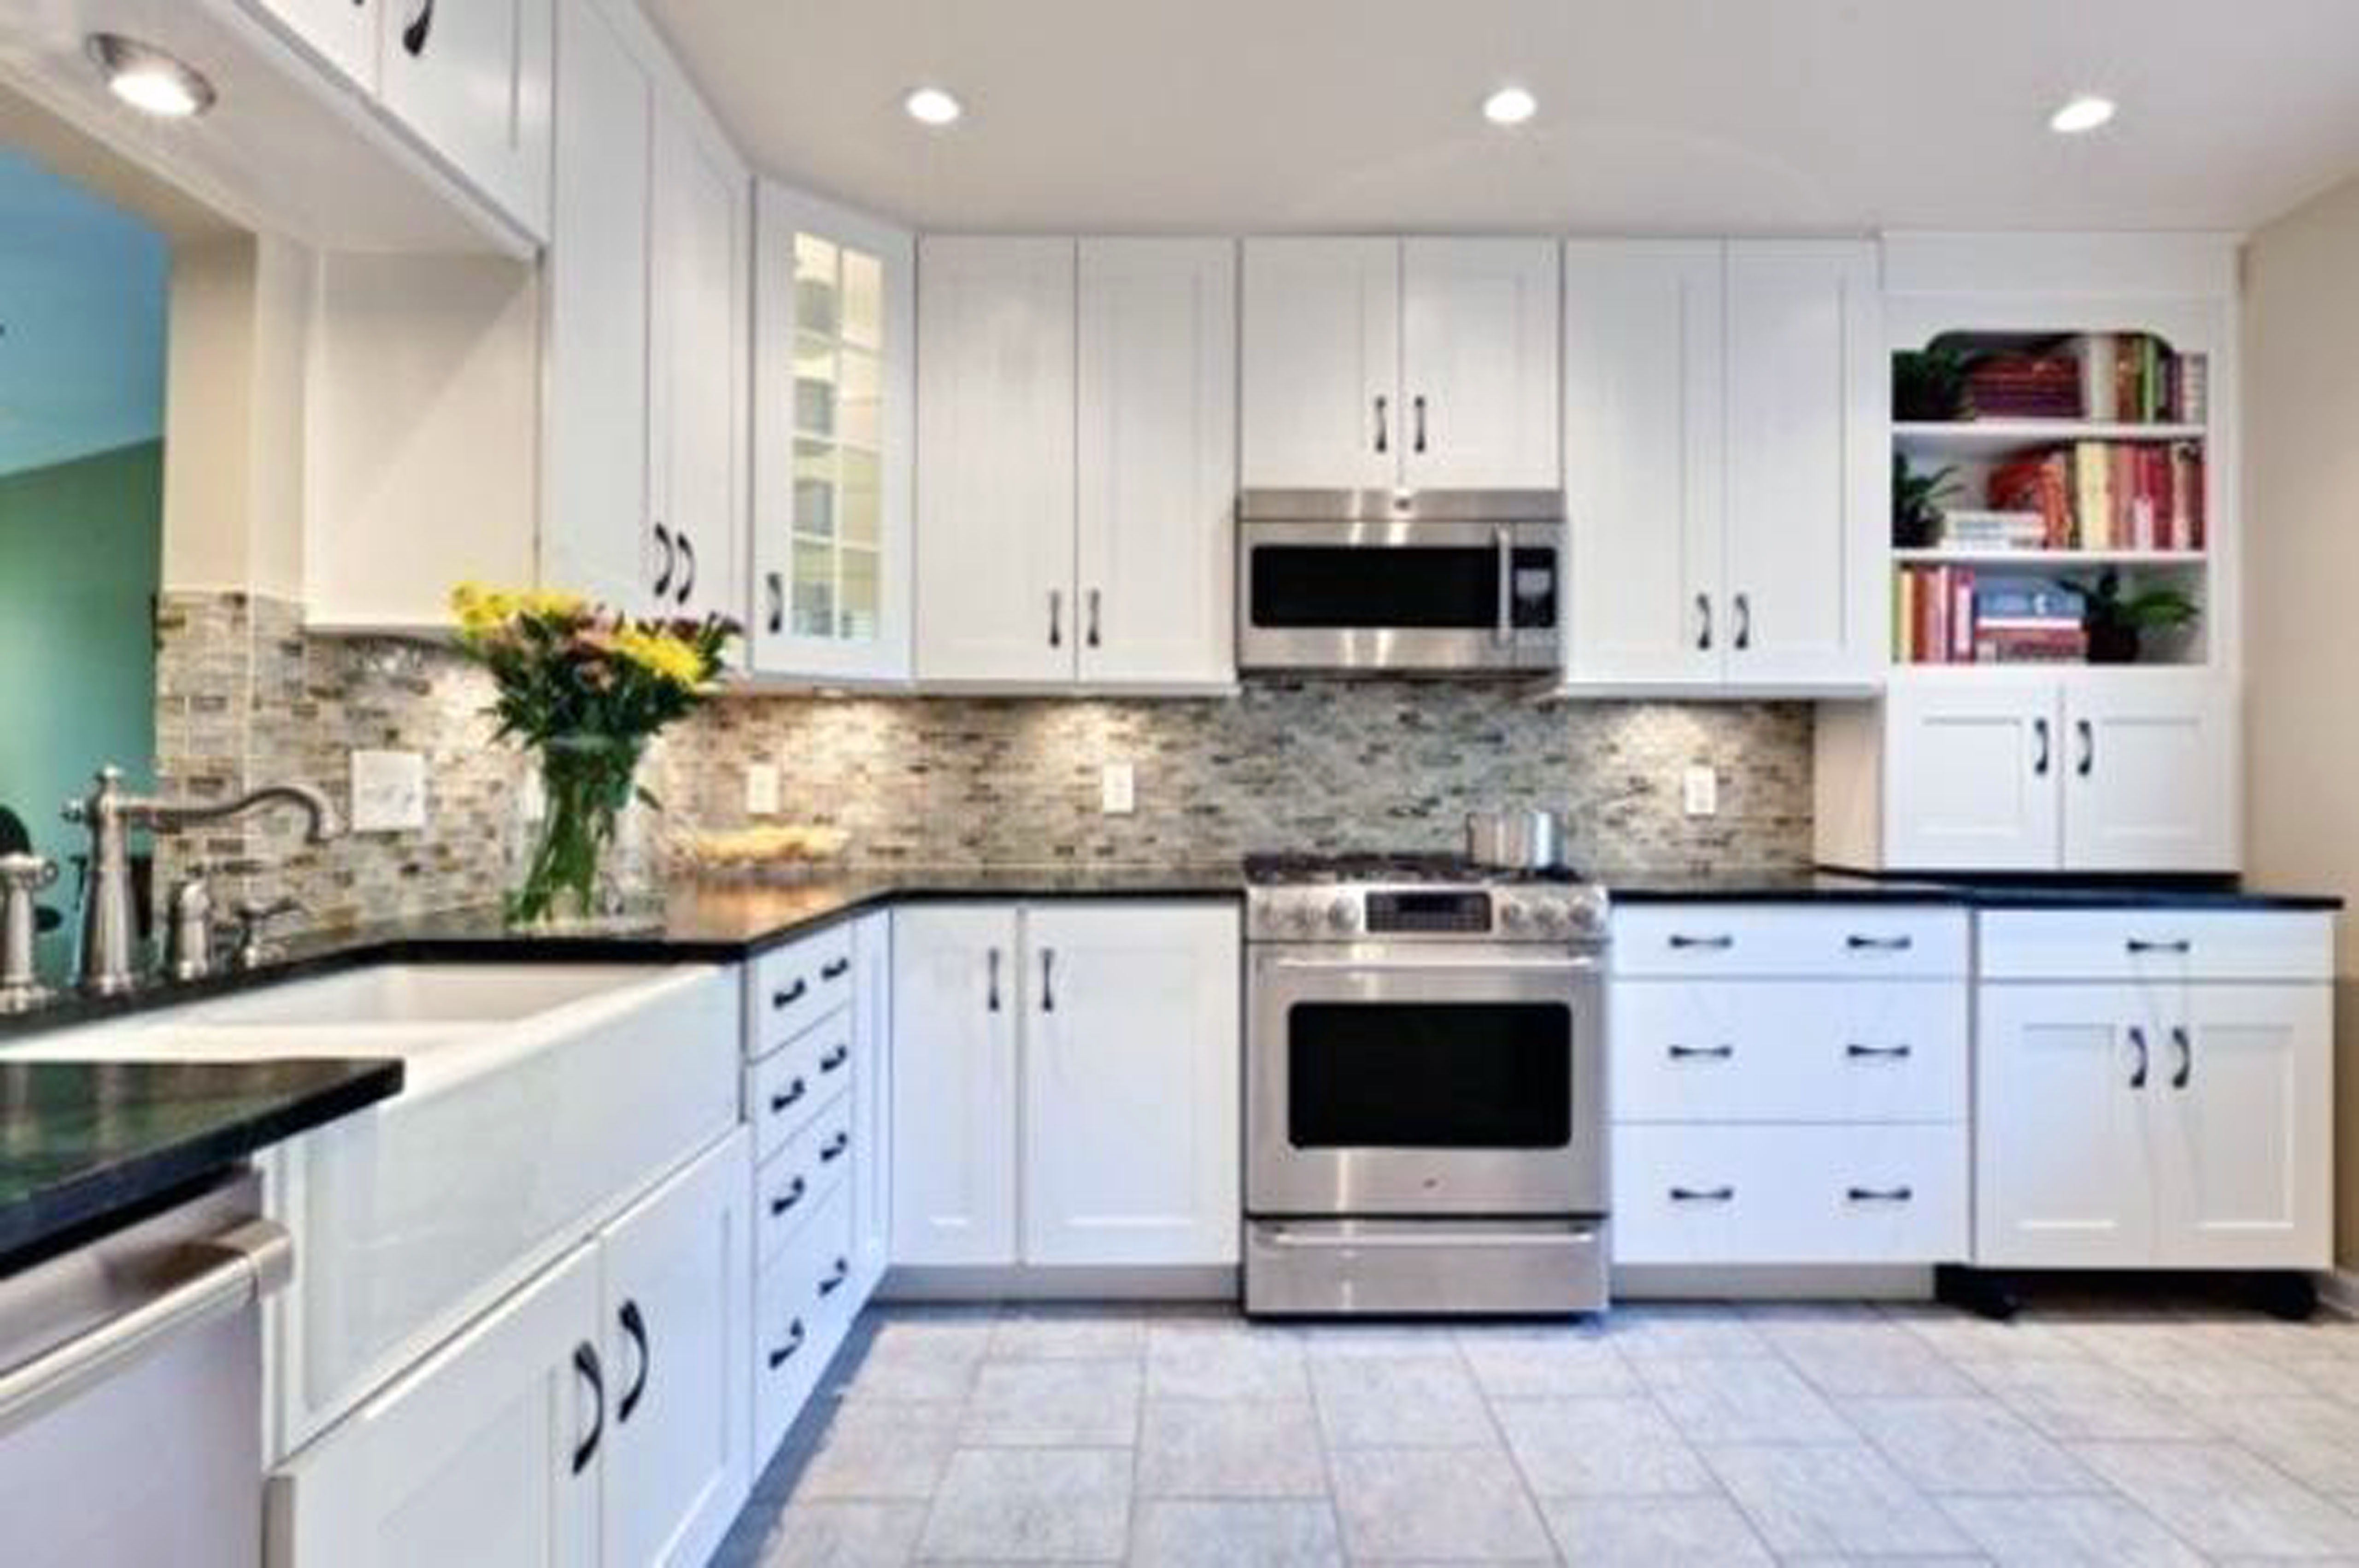 Illuminating Kitchen using Bright Under Cabinet Lights above Grey Tile Backsplash and Dark Countertop